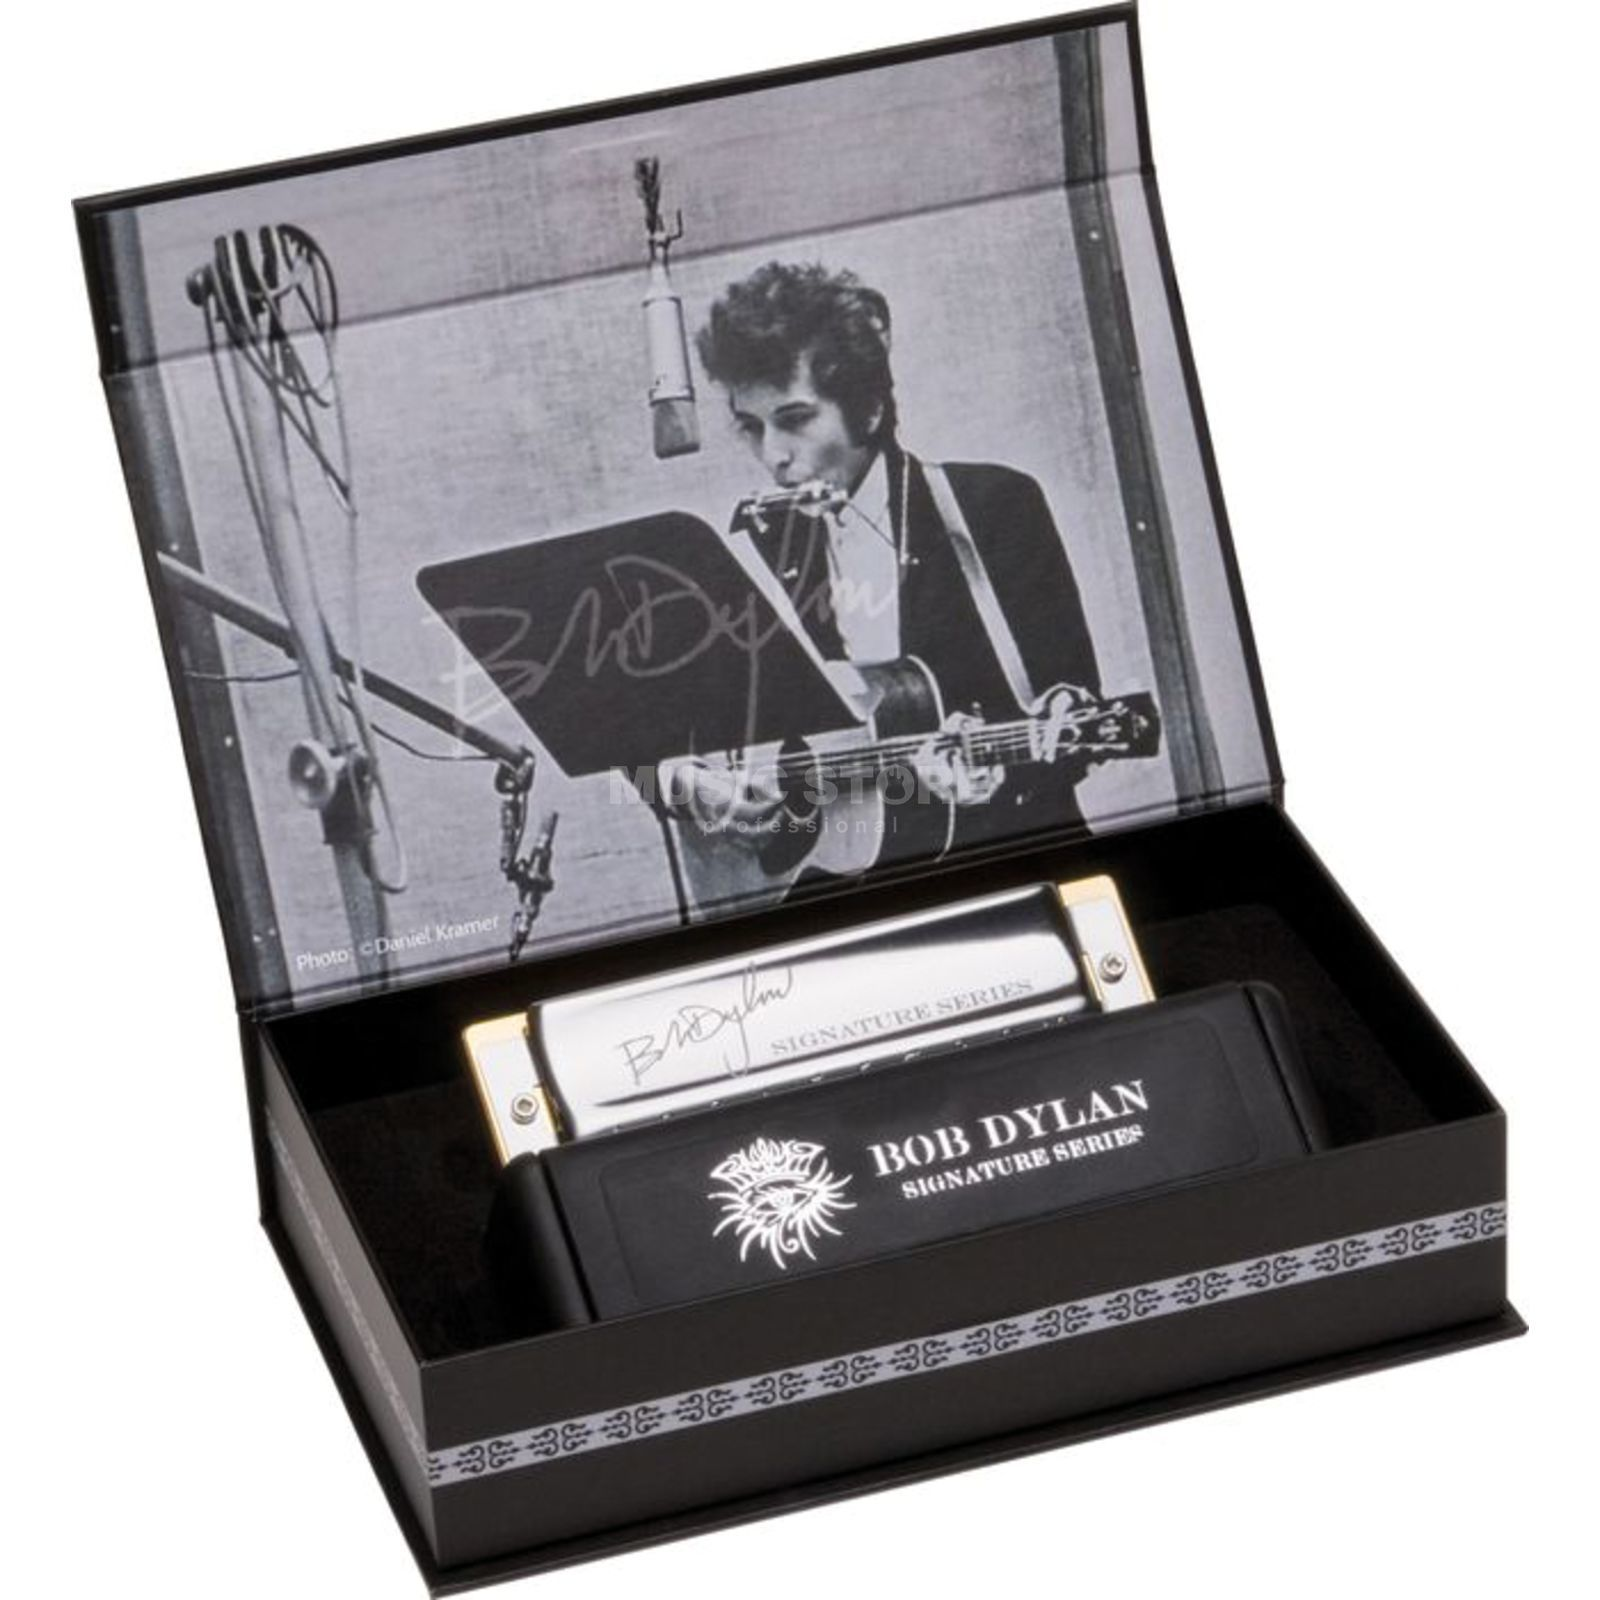 Hohner Bob Dylan Signature Harp C-Major Изображение товара